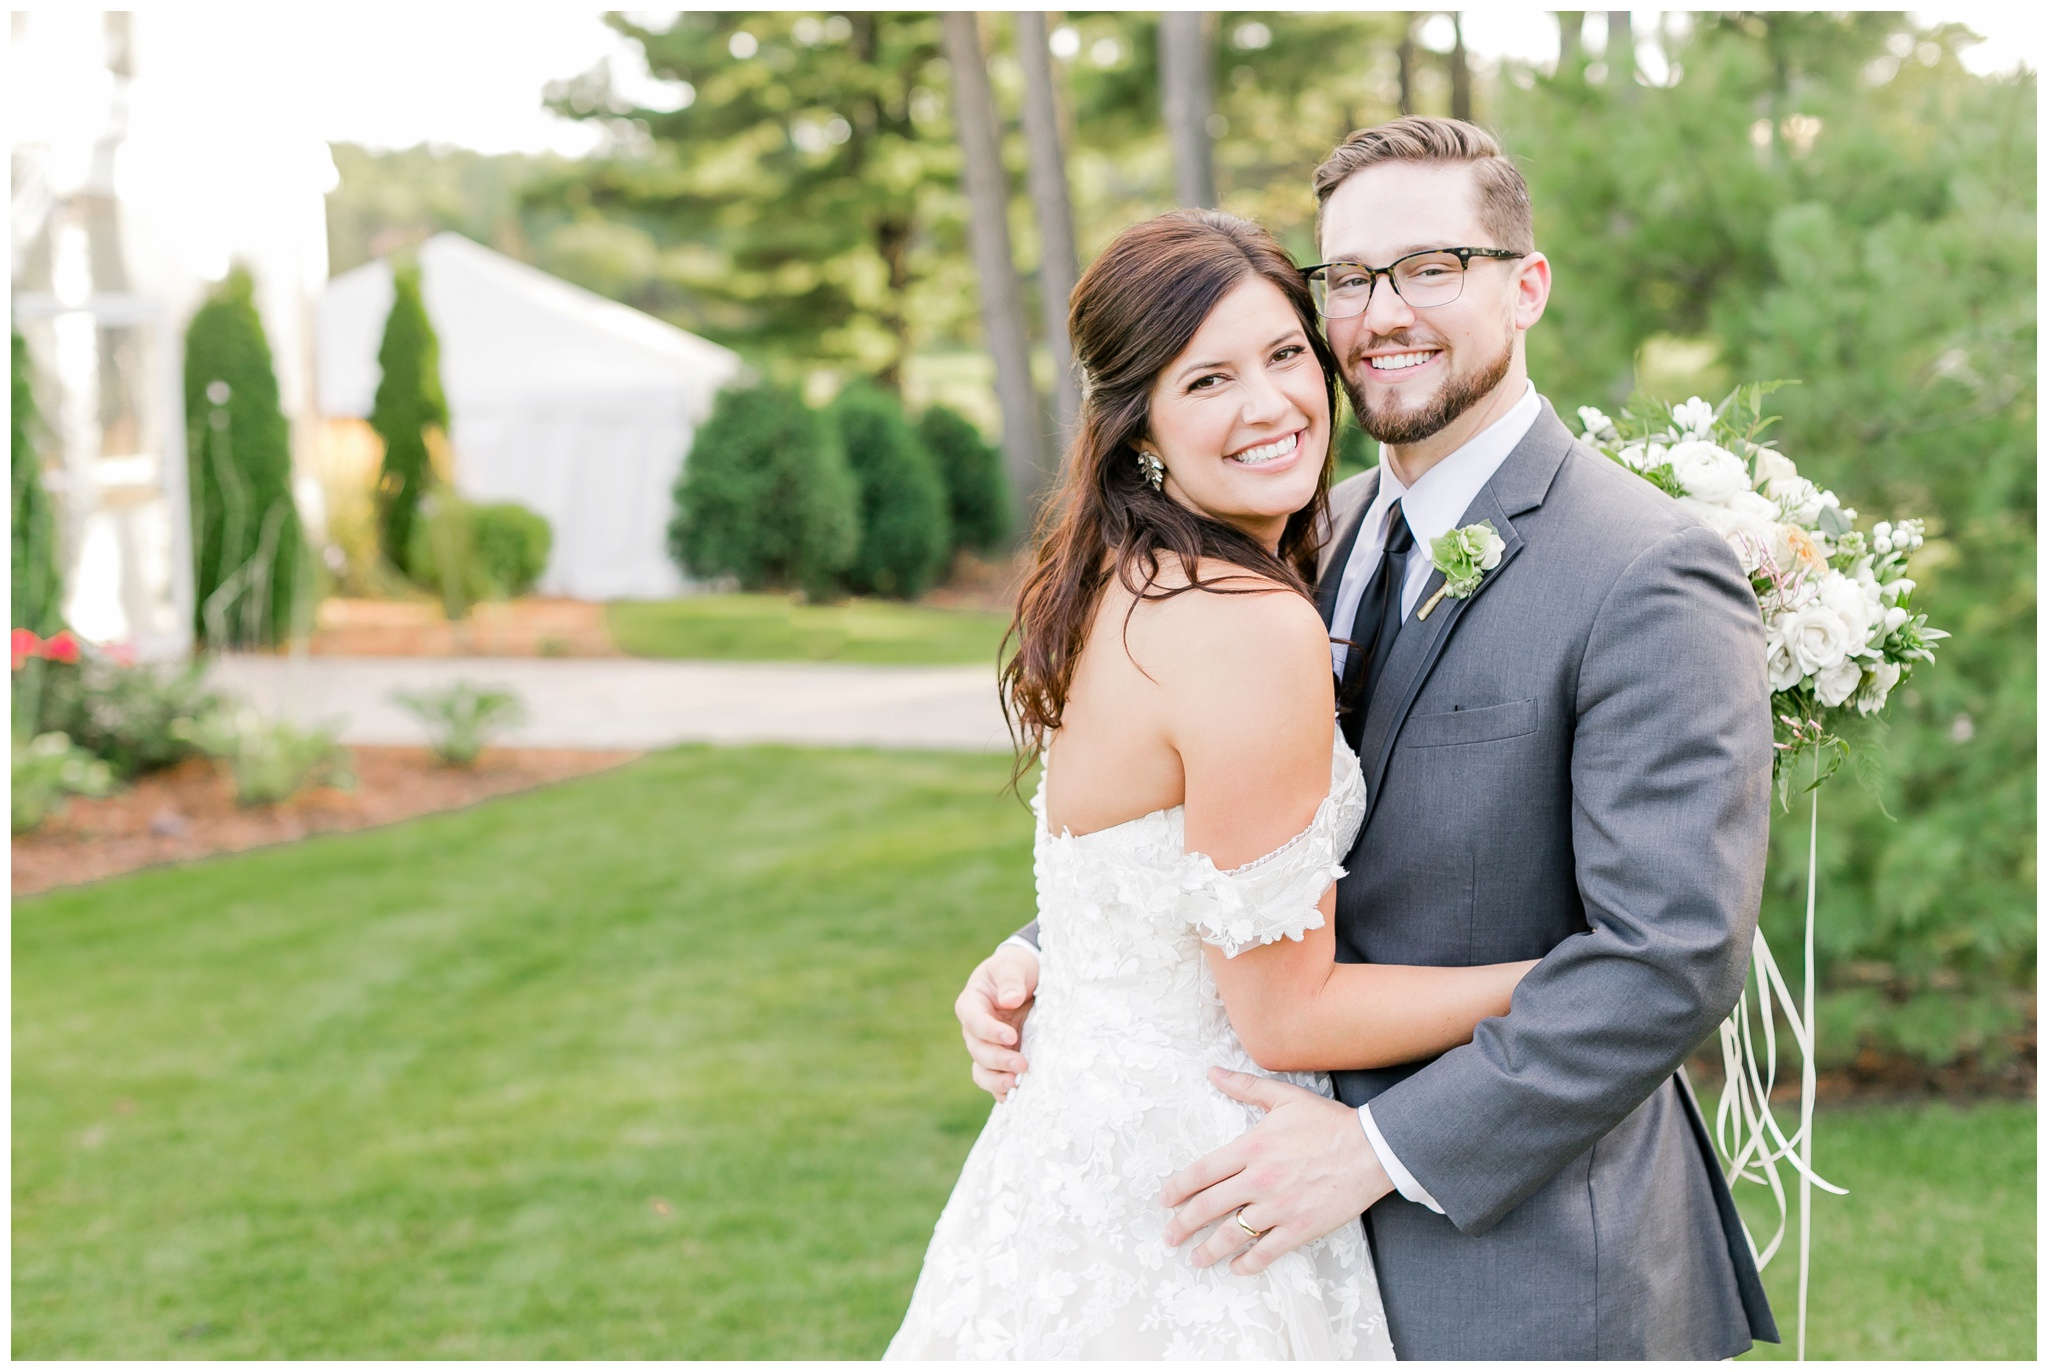 bishops_bay_country_club_wedding_middleton_wisconsin_caynay_photo_4727.jpg